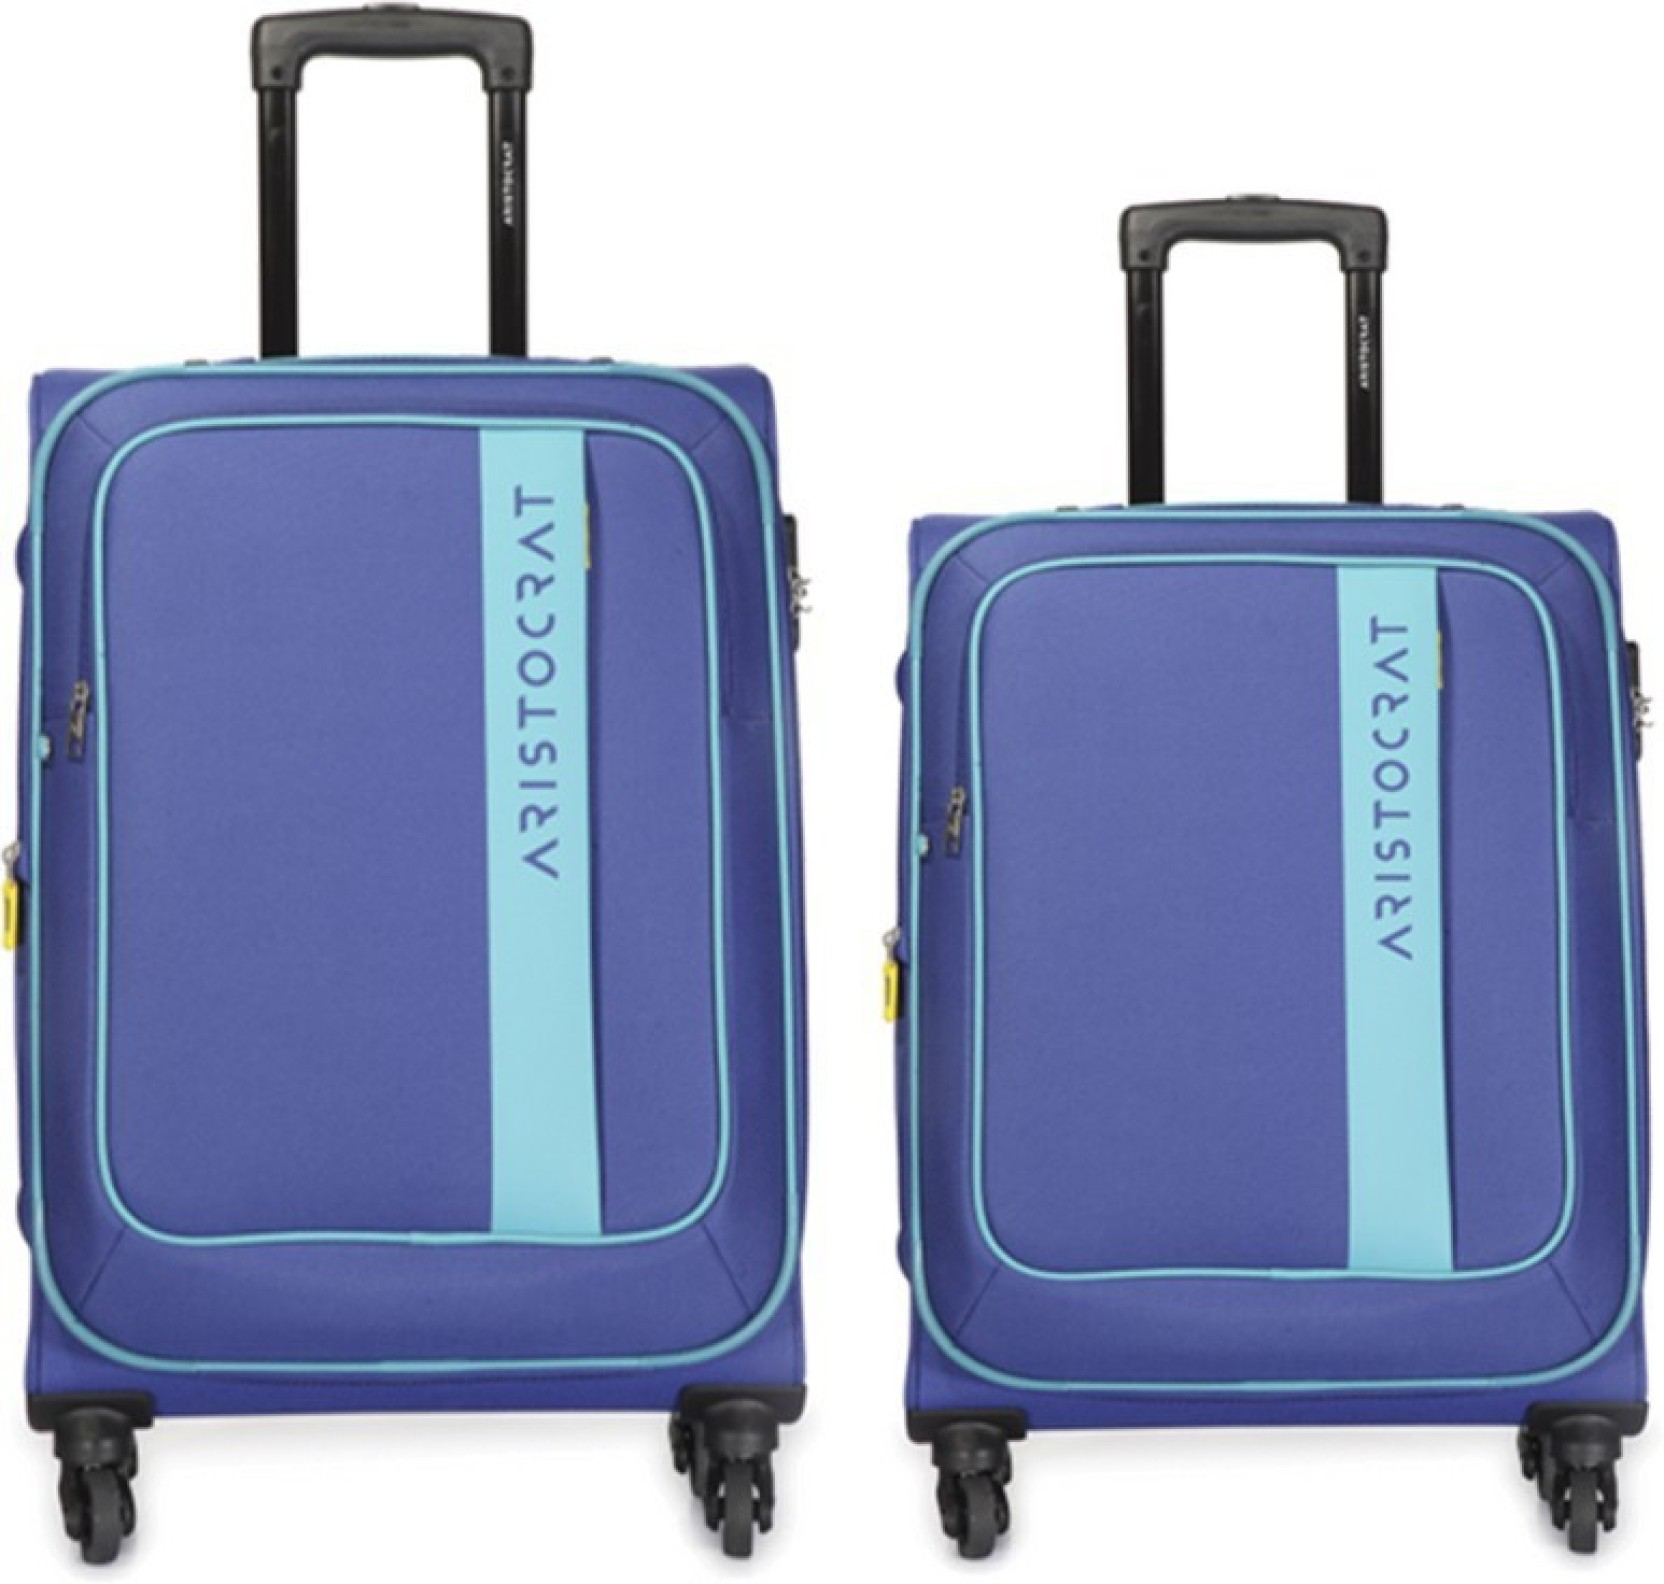 48a11dc6e723 Aristocrat dter new Expandable Check-in Luggage - 26 inch Blue ...